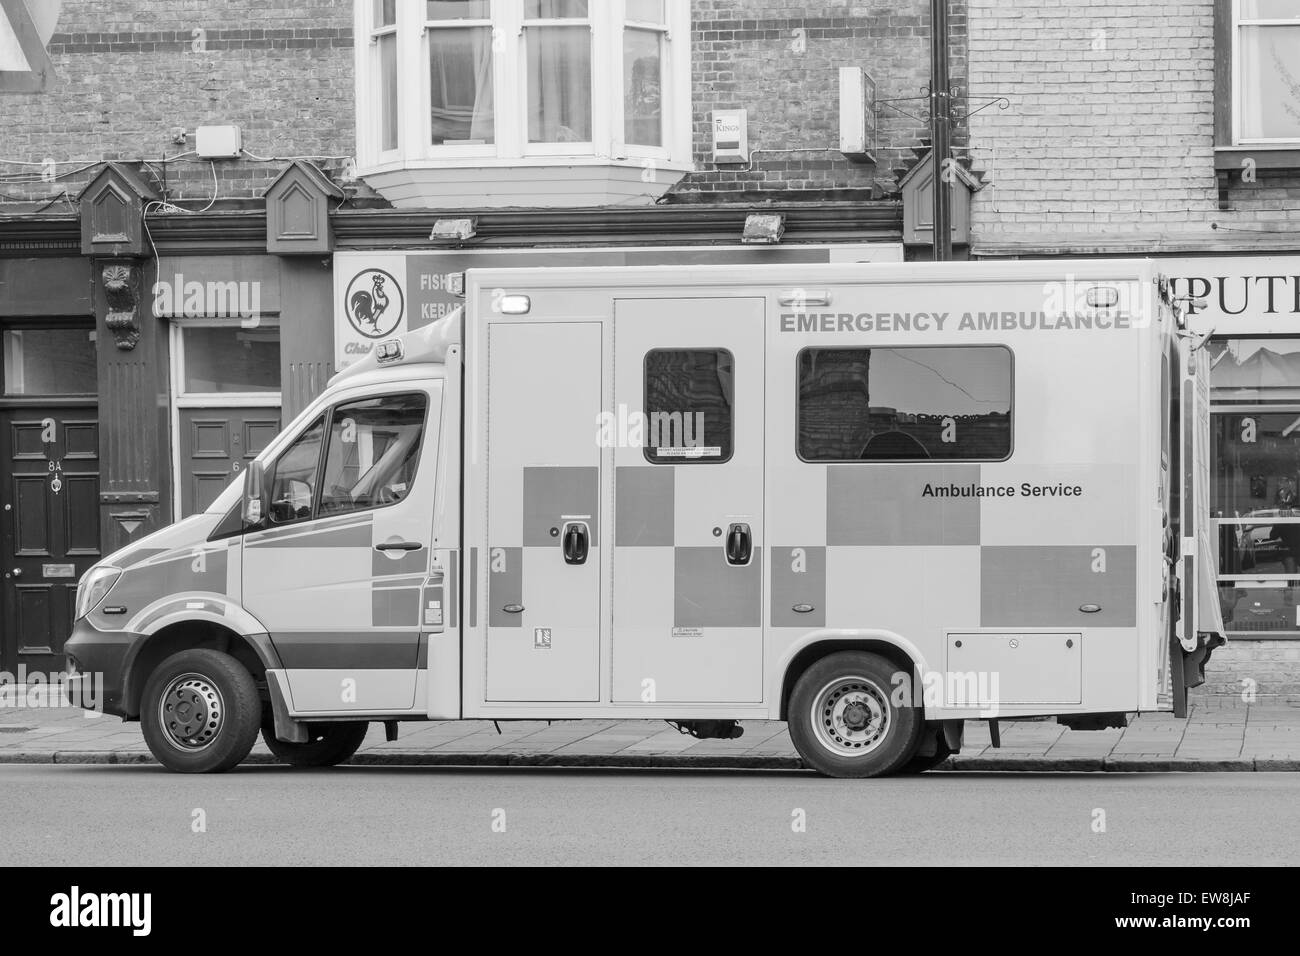 CAMBRIDGE, ENGLAND - 7 MAY 2015: NHS England Ambulance responding to an emergency on Mill road, Cambridge monochrome - Stock Image